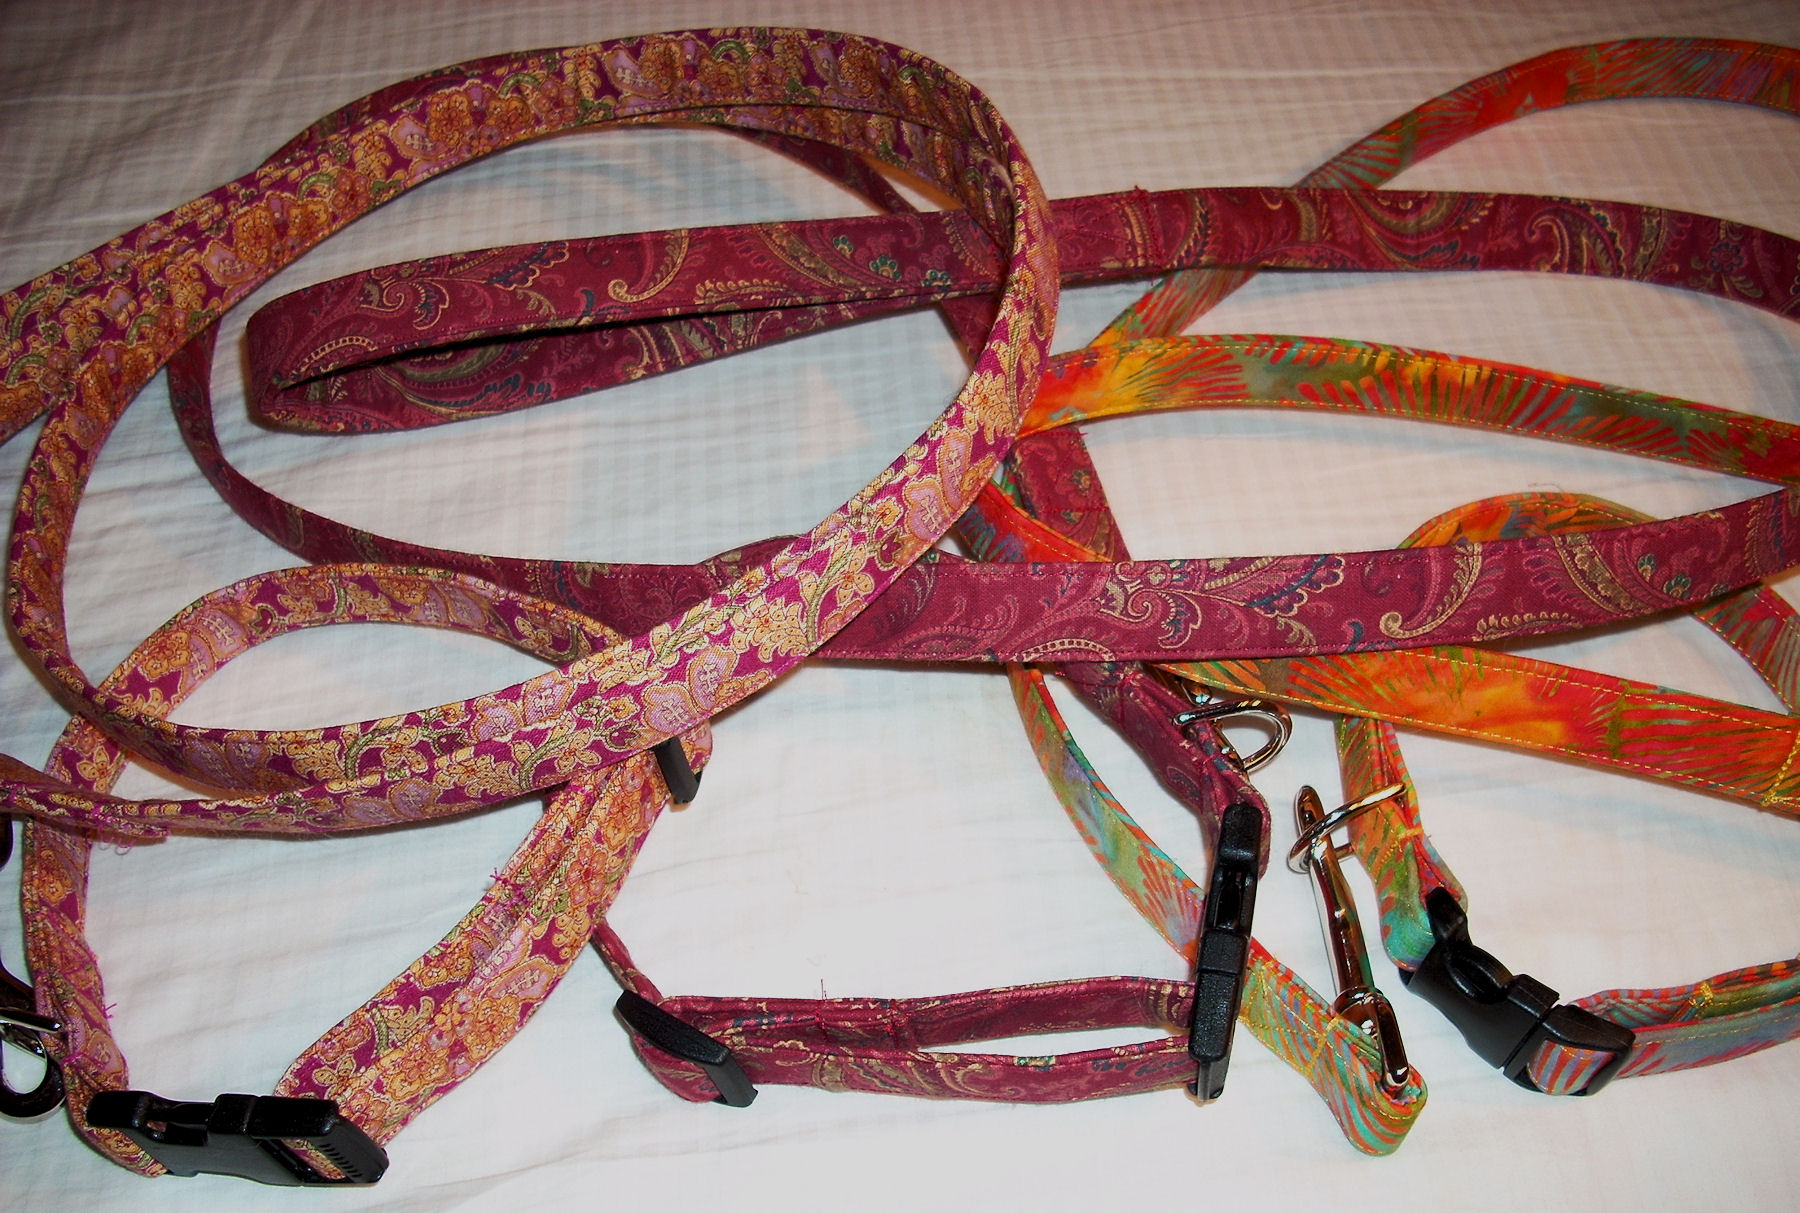 2012 Collars & Leashes 3